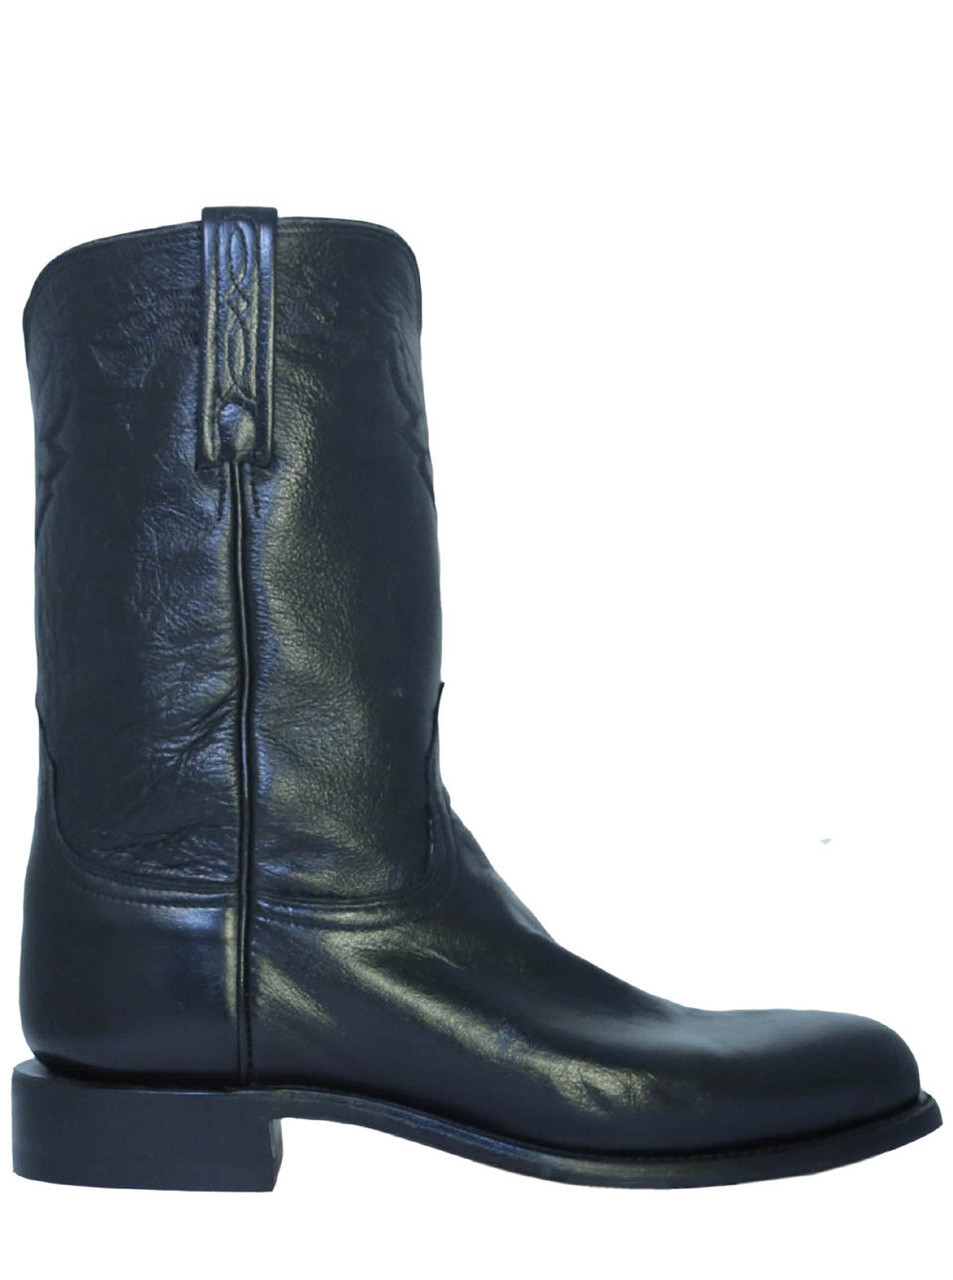 latest releases official price 2019 factory price Lucchese T0082 Men's Leather Roper Cowboy Boots Short Shaft Black